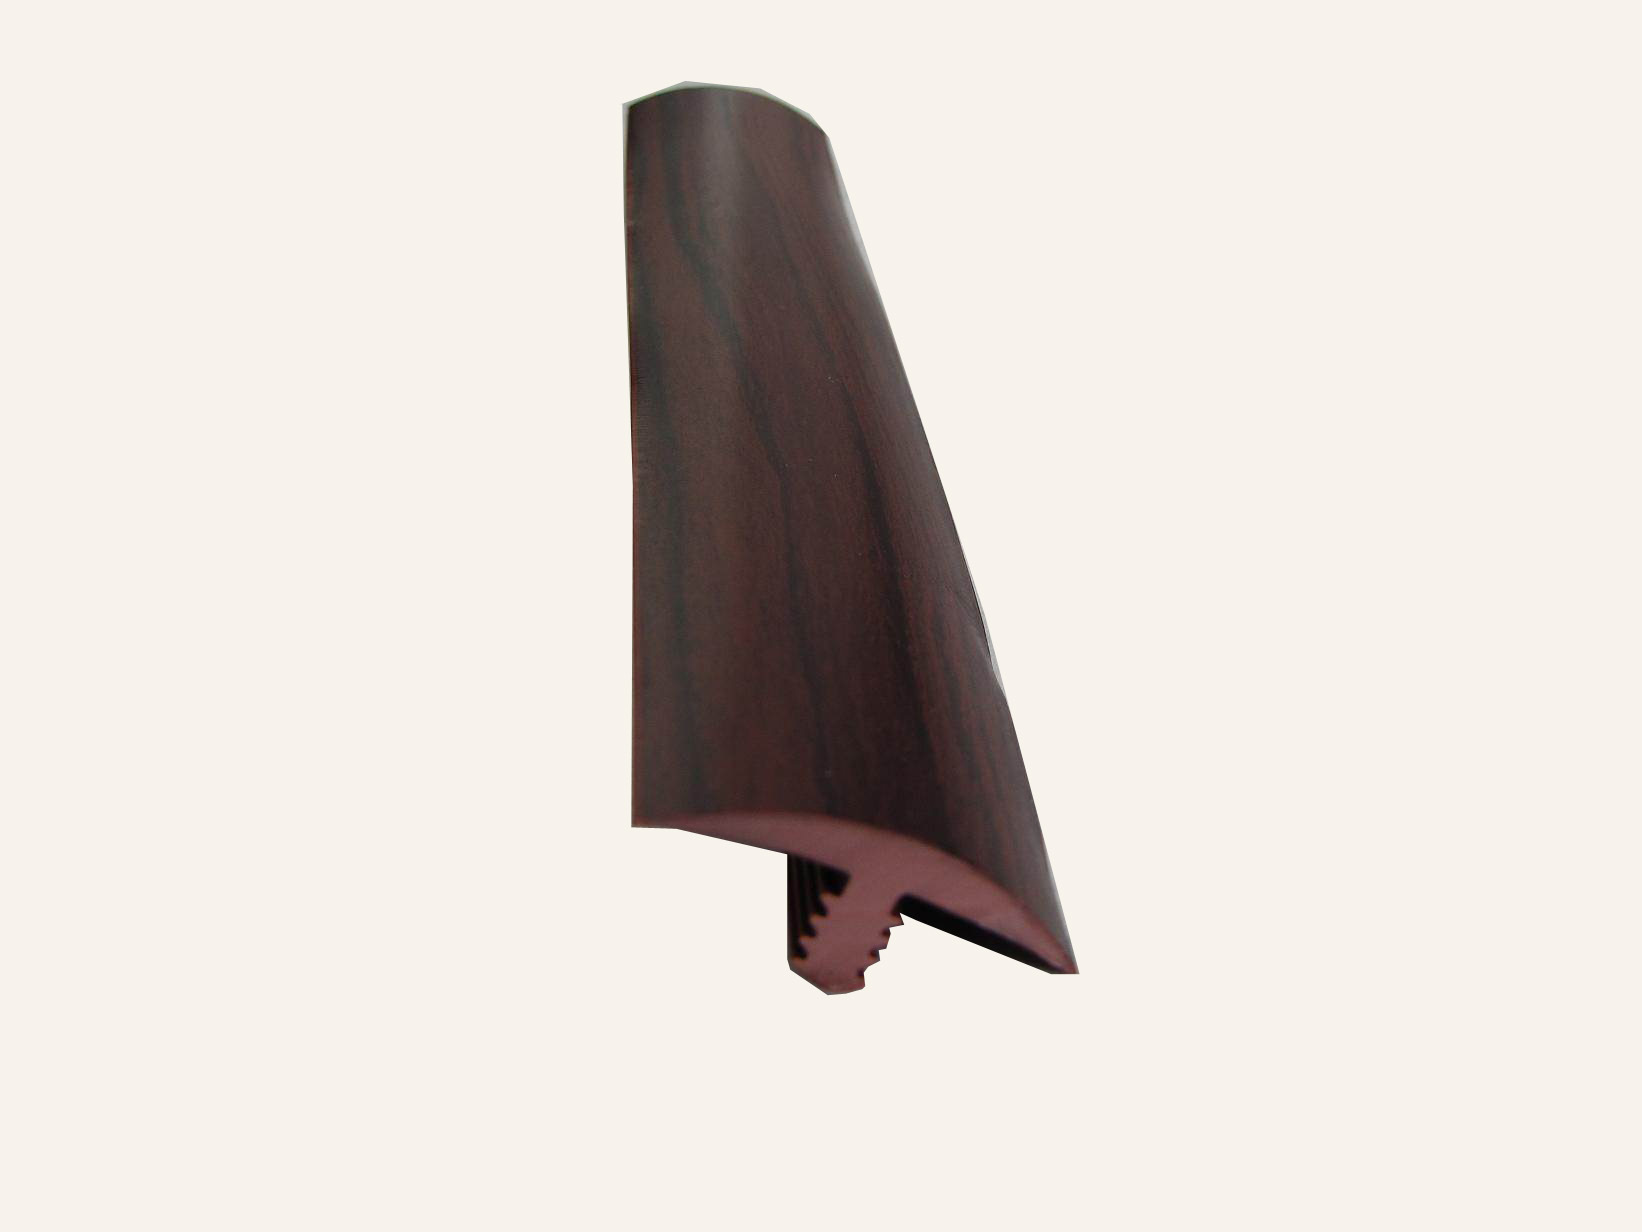 T forme profil fen tre pvc bande de chant e0101 photo for Profil pvc fenetre